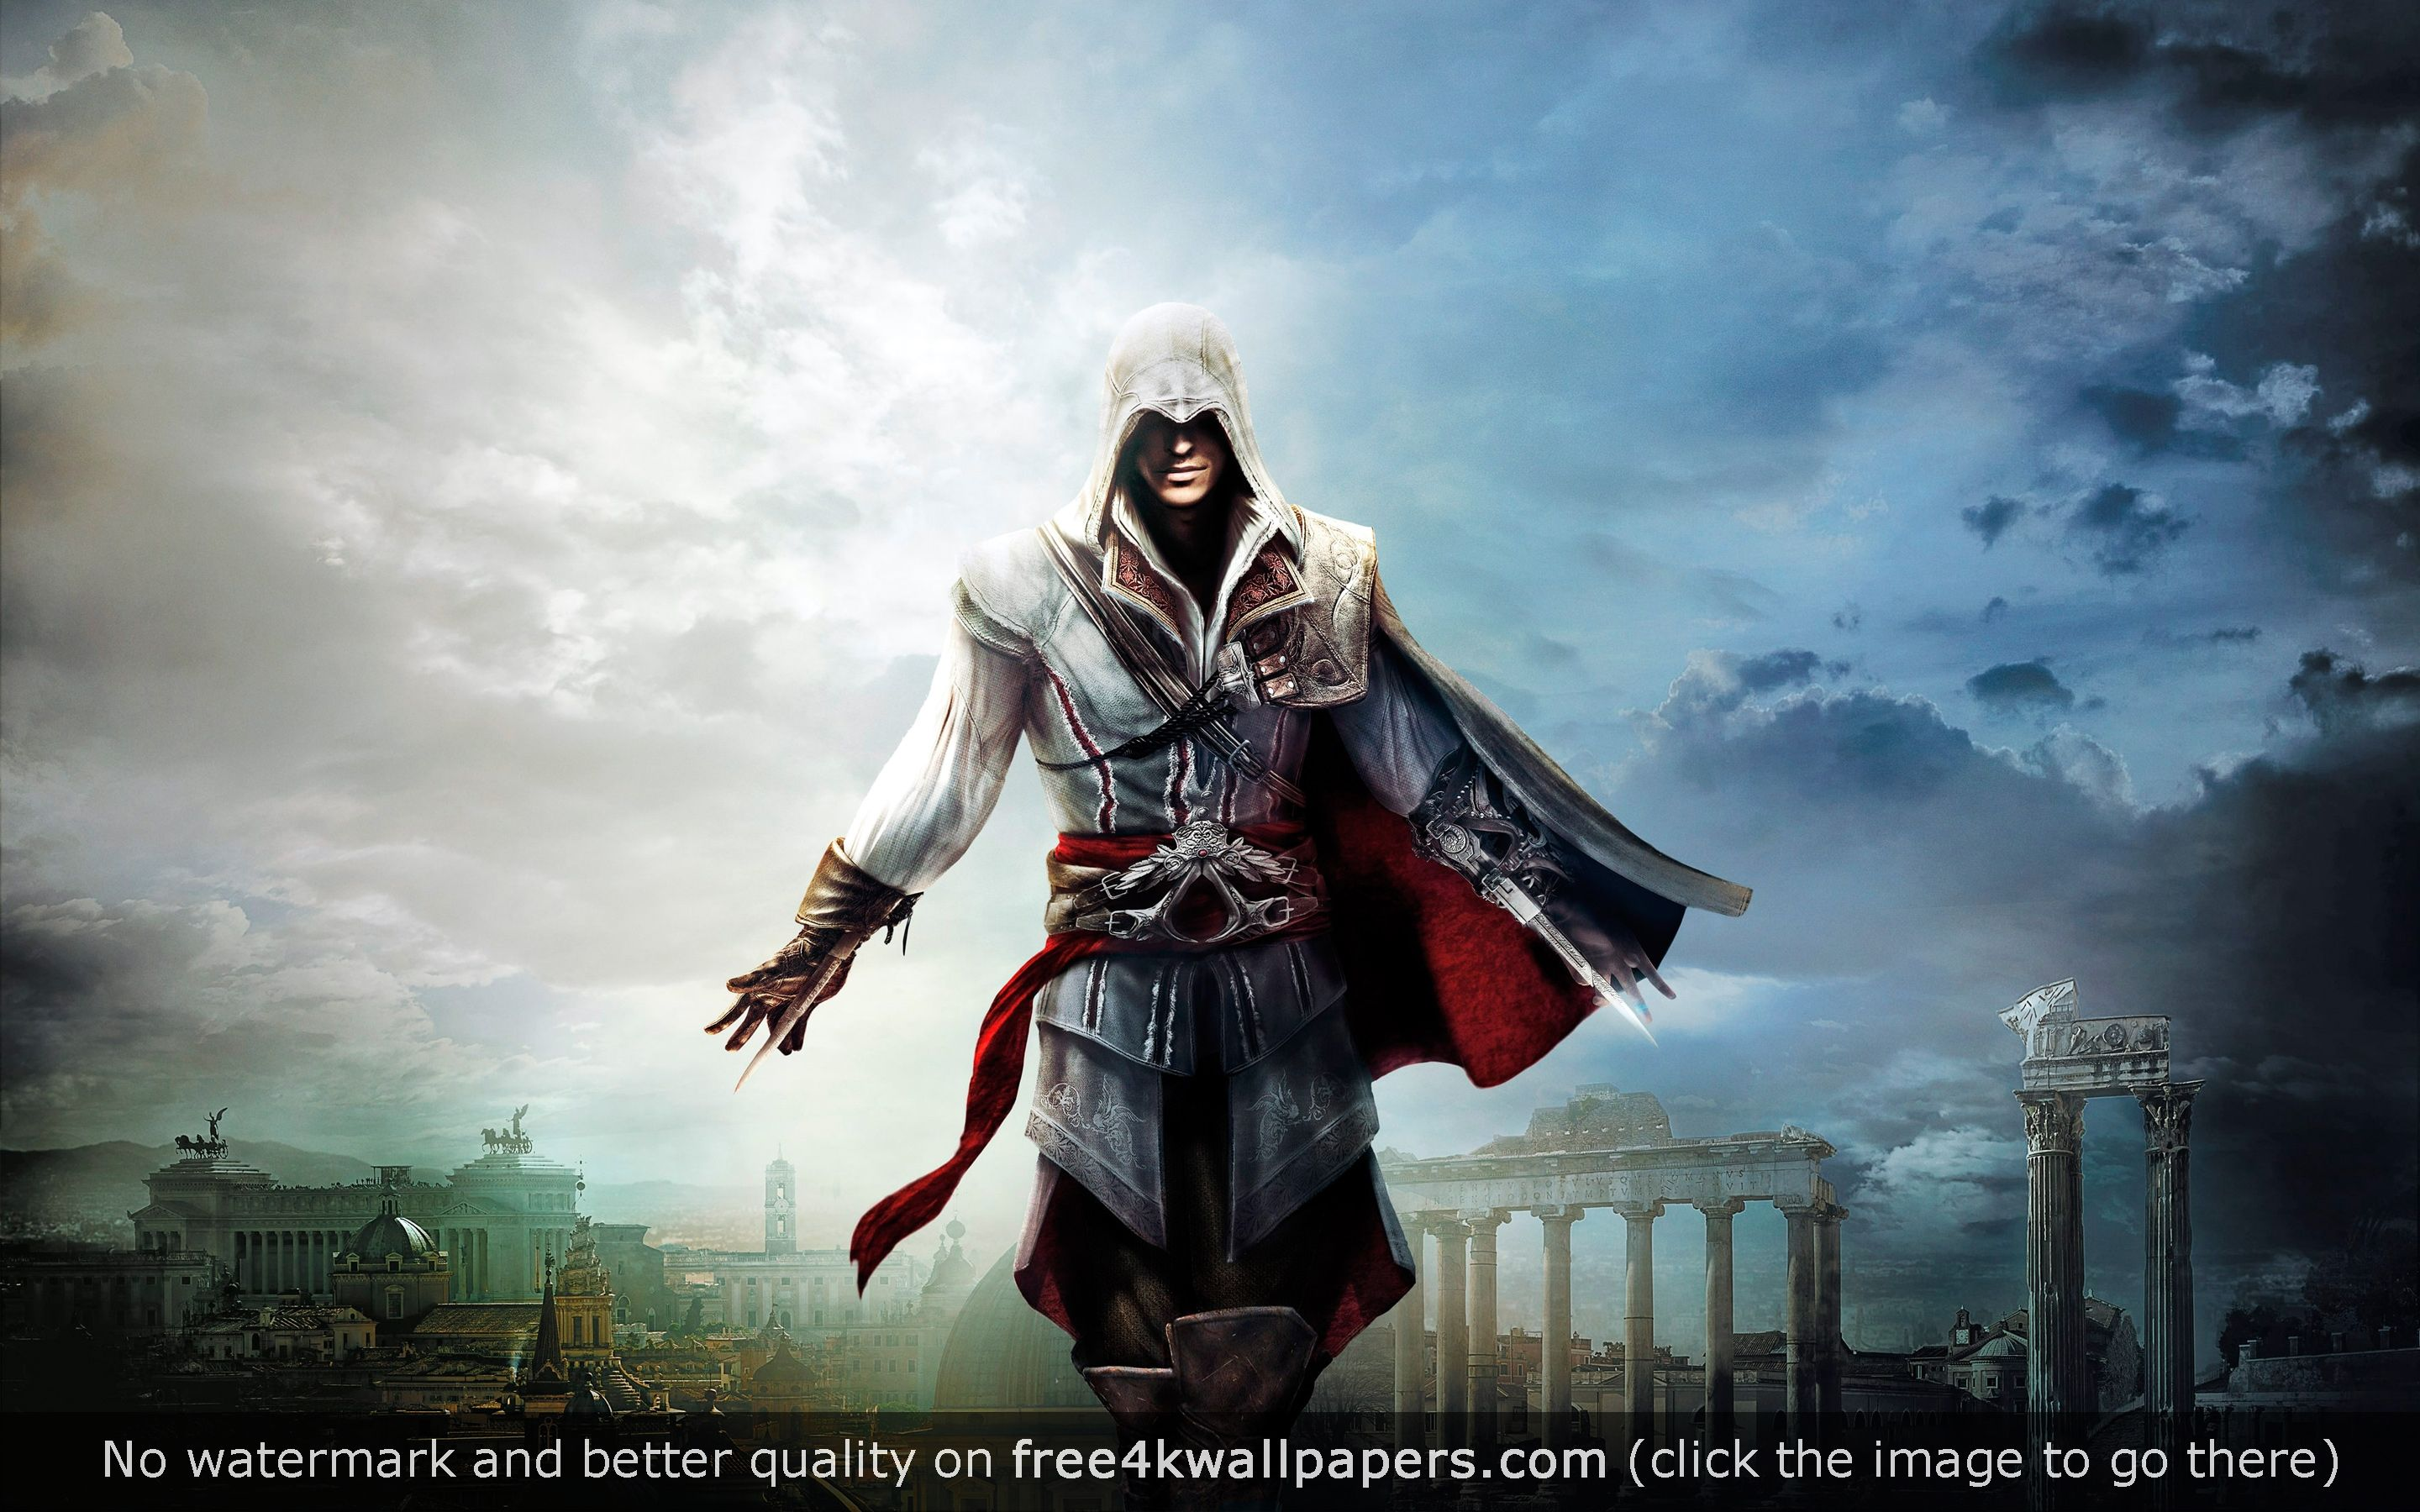 Ezio Assassins Creed The Ezio Collection 4k Hd Wallpaper Assassins Creed Assassin S Creed Wallpaper Assassin S Creed